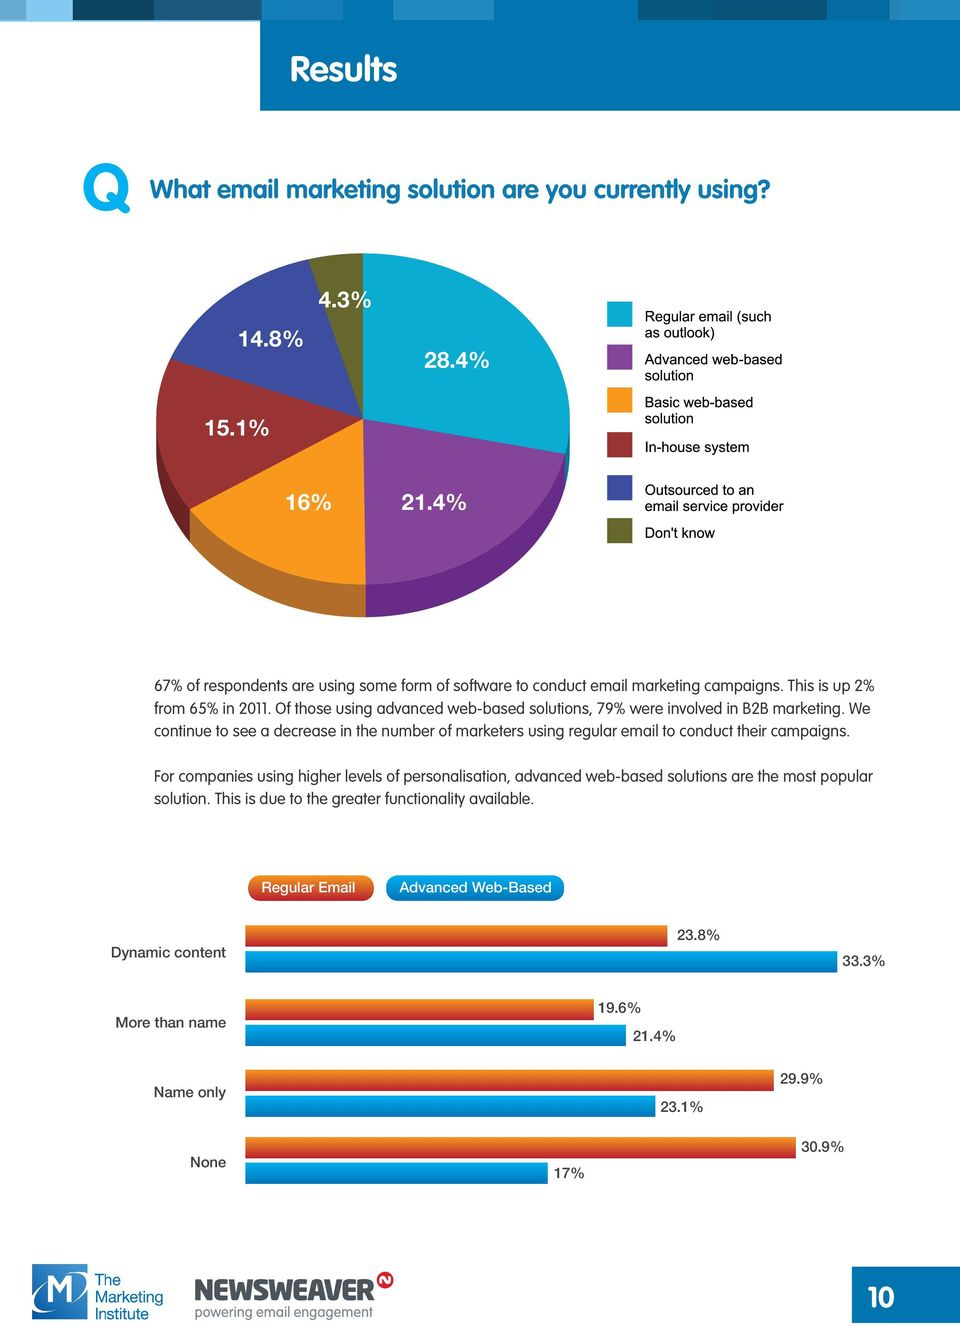 Of those using advanced web-based solutions, 79% were involved in B2B marketing.